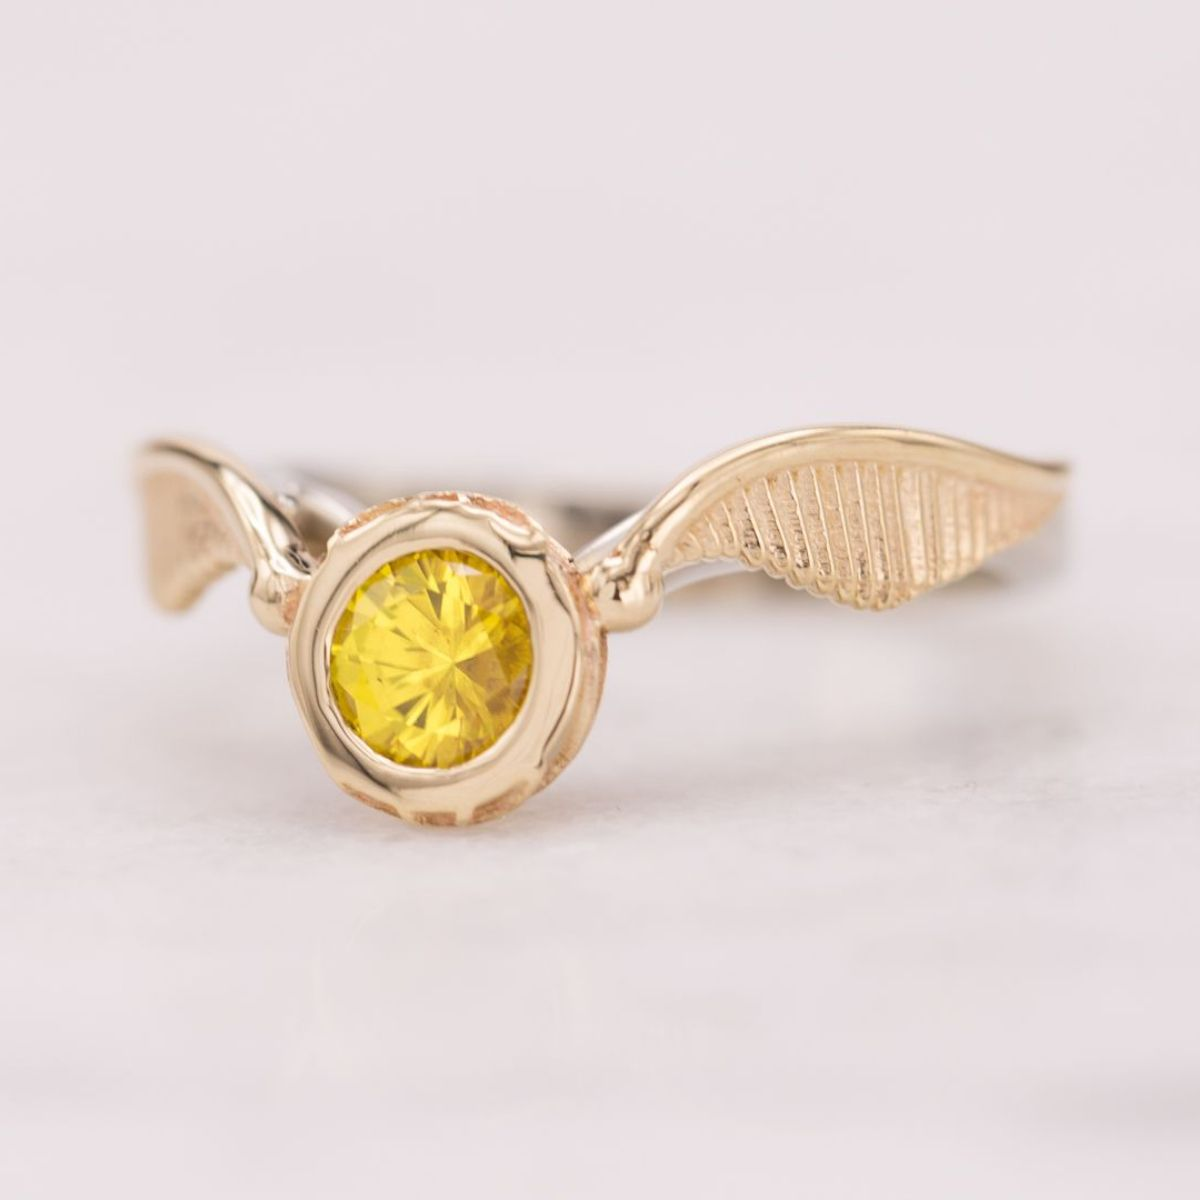 This Snitch Engagement Ring Sets A Bright Yellow Shire As The Center Stone In Harry Potter Fan S Dream